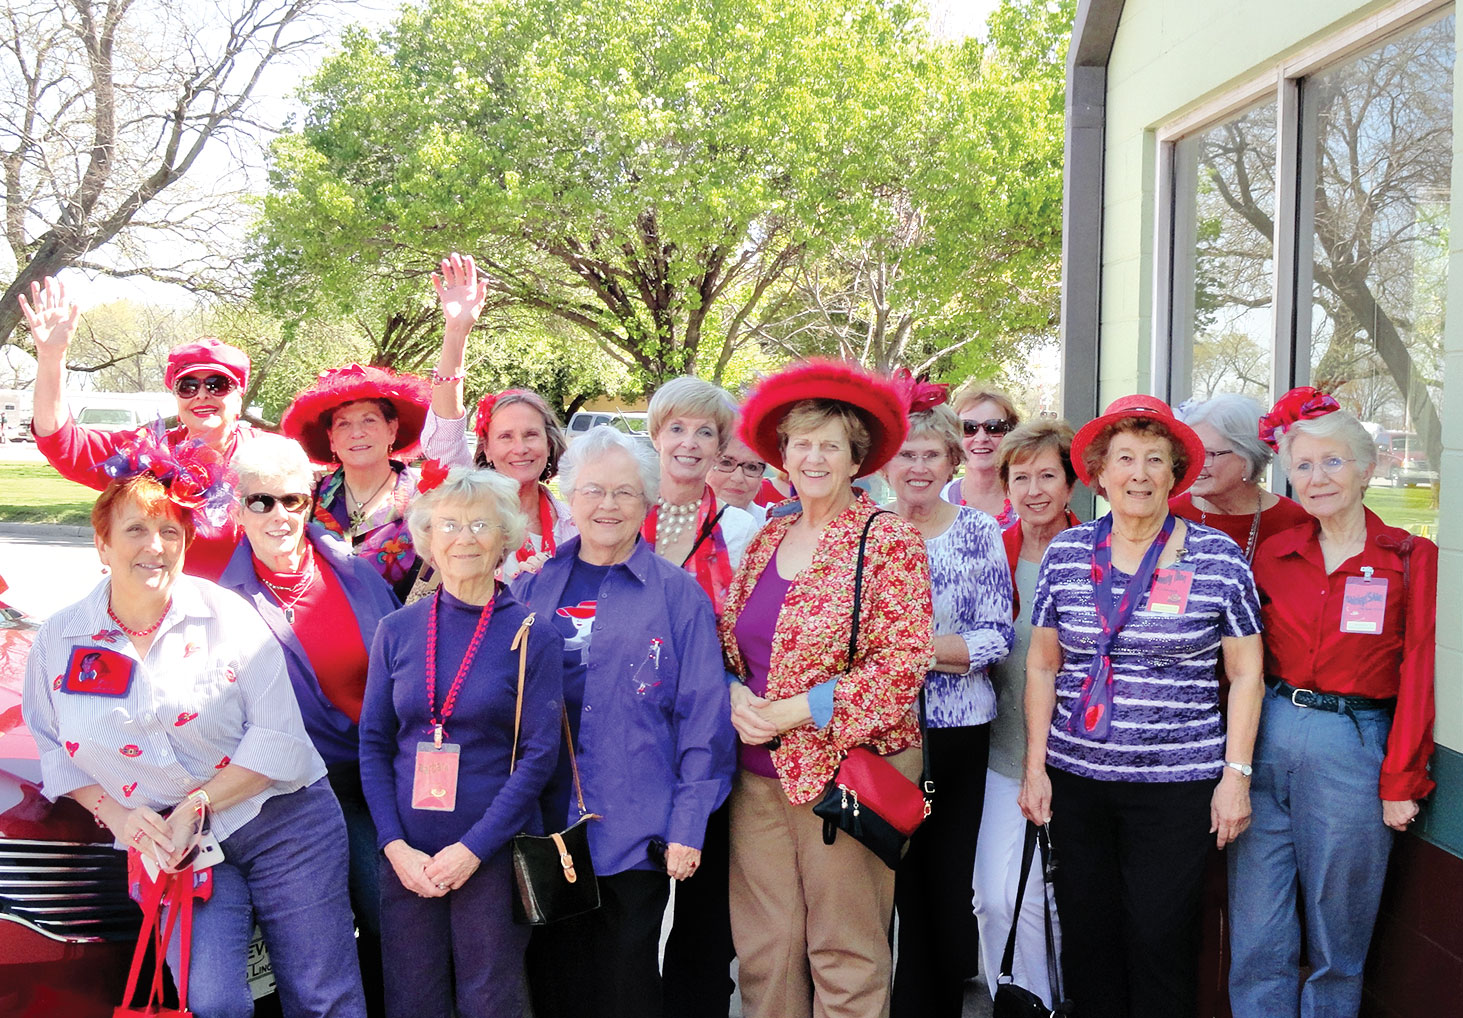 The Ladies with Hattitude recently visited downtown Denton.